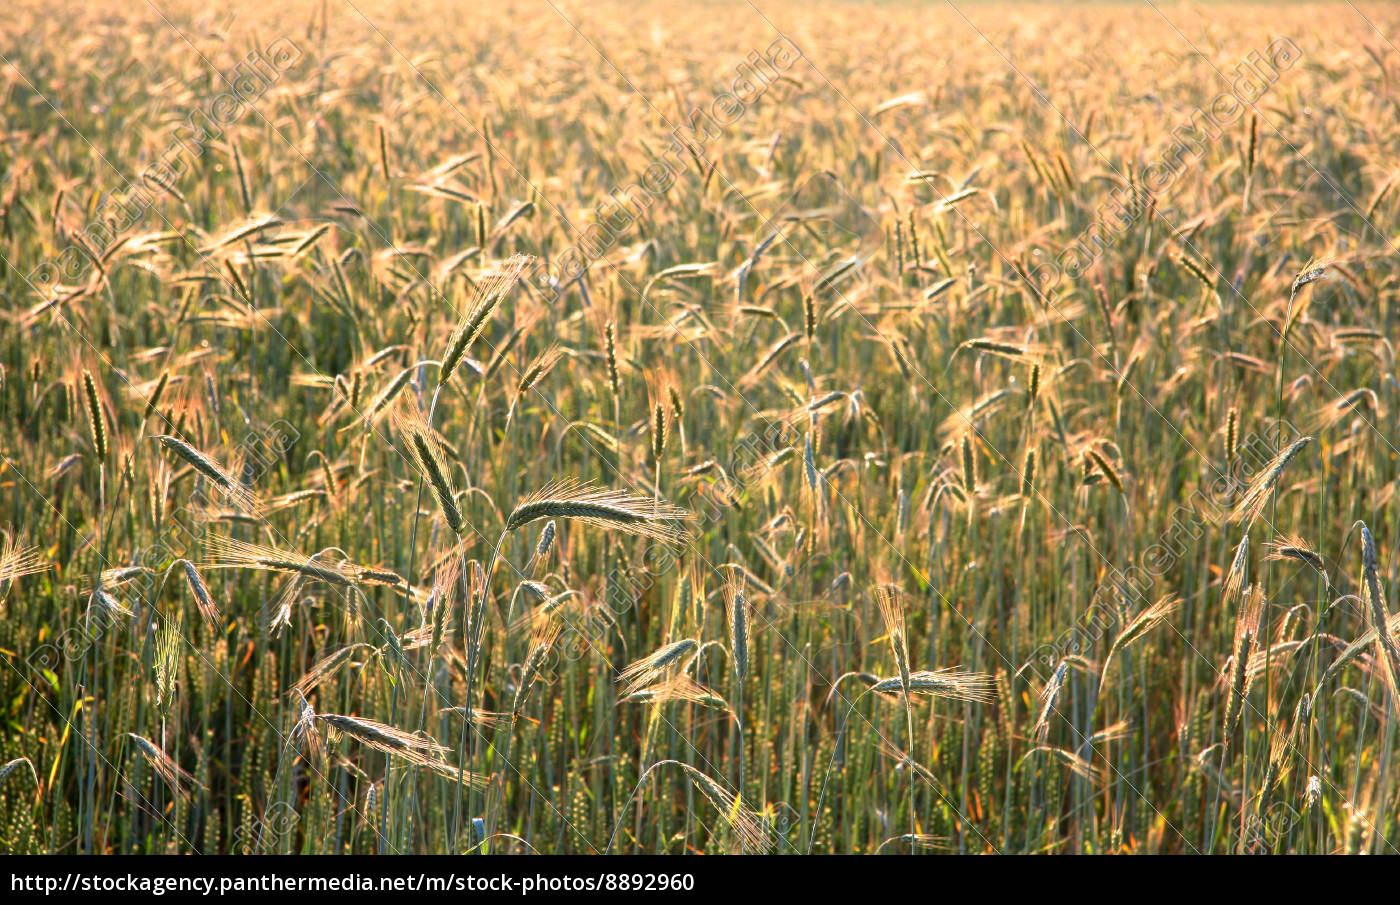 food, aliment, agriculture, farming, field, summer - 8892960